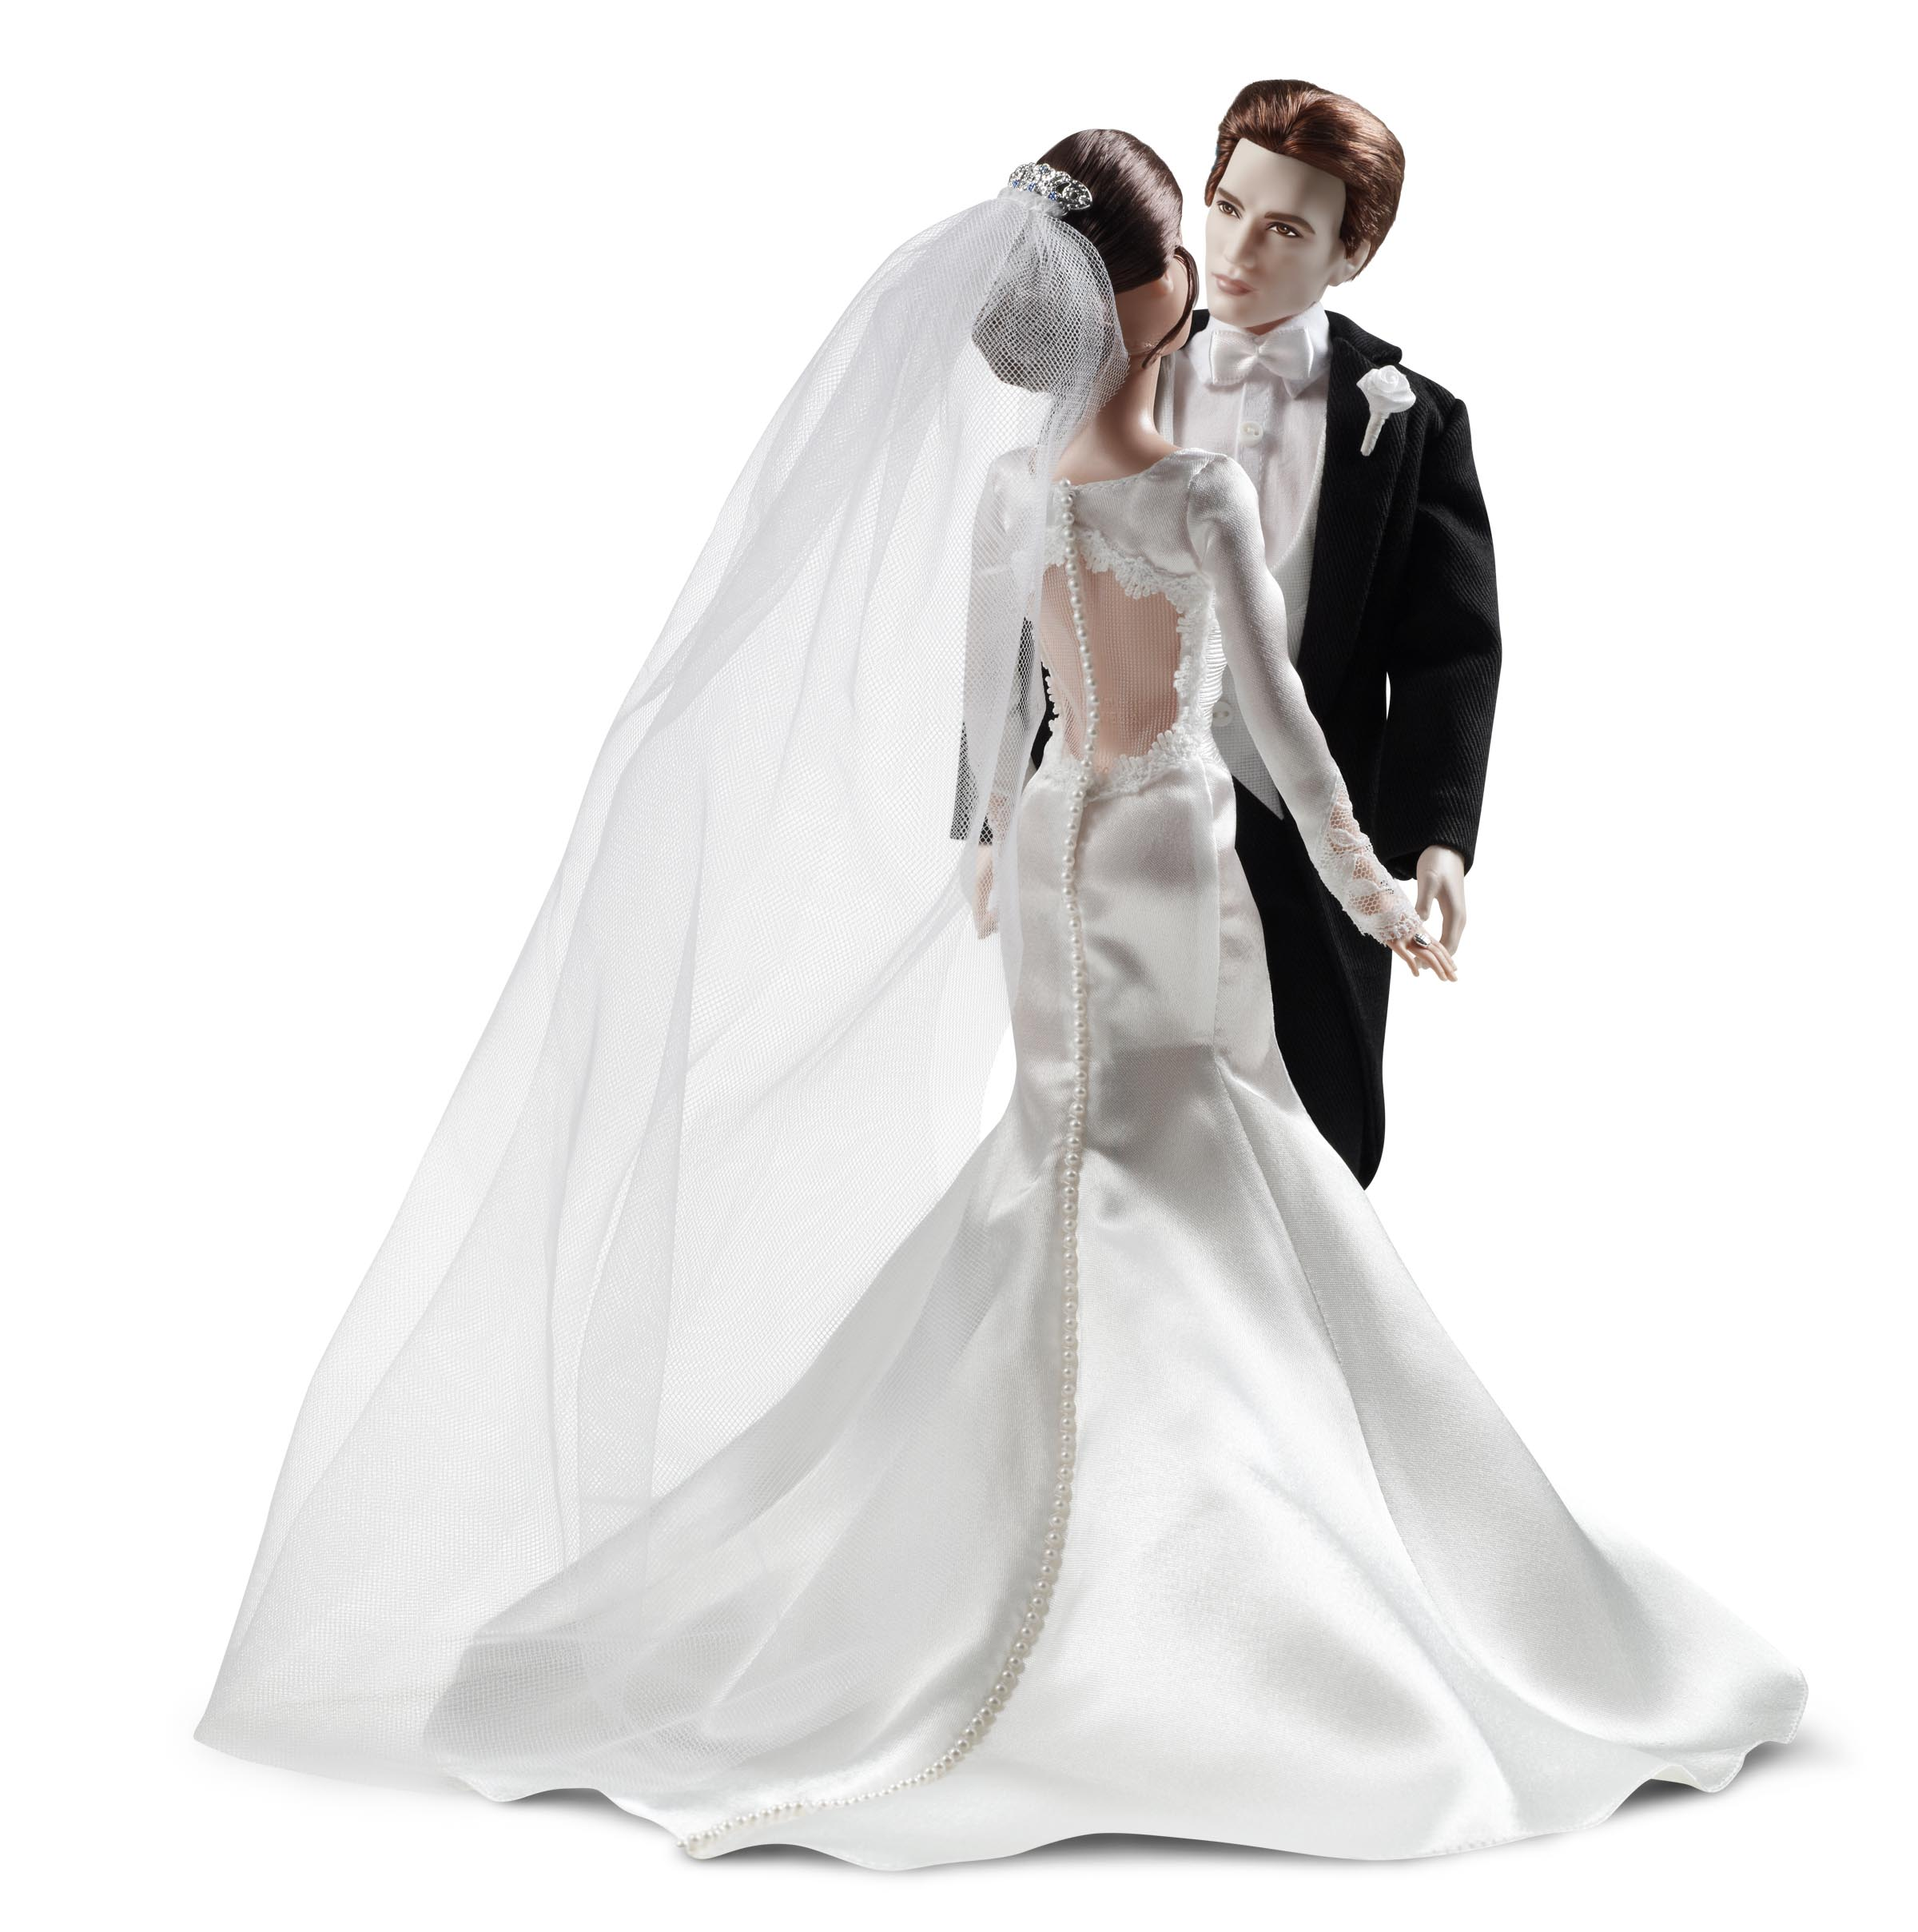 Bella & Edward Wedding Day Barbie - Twilight Series Theories